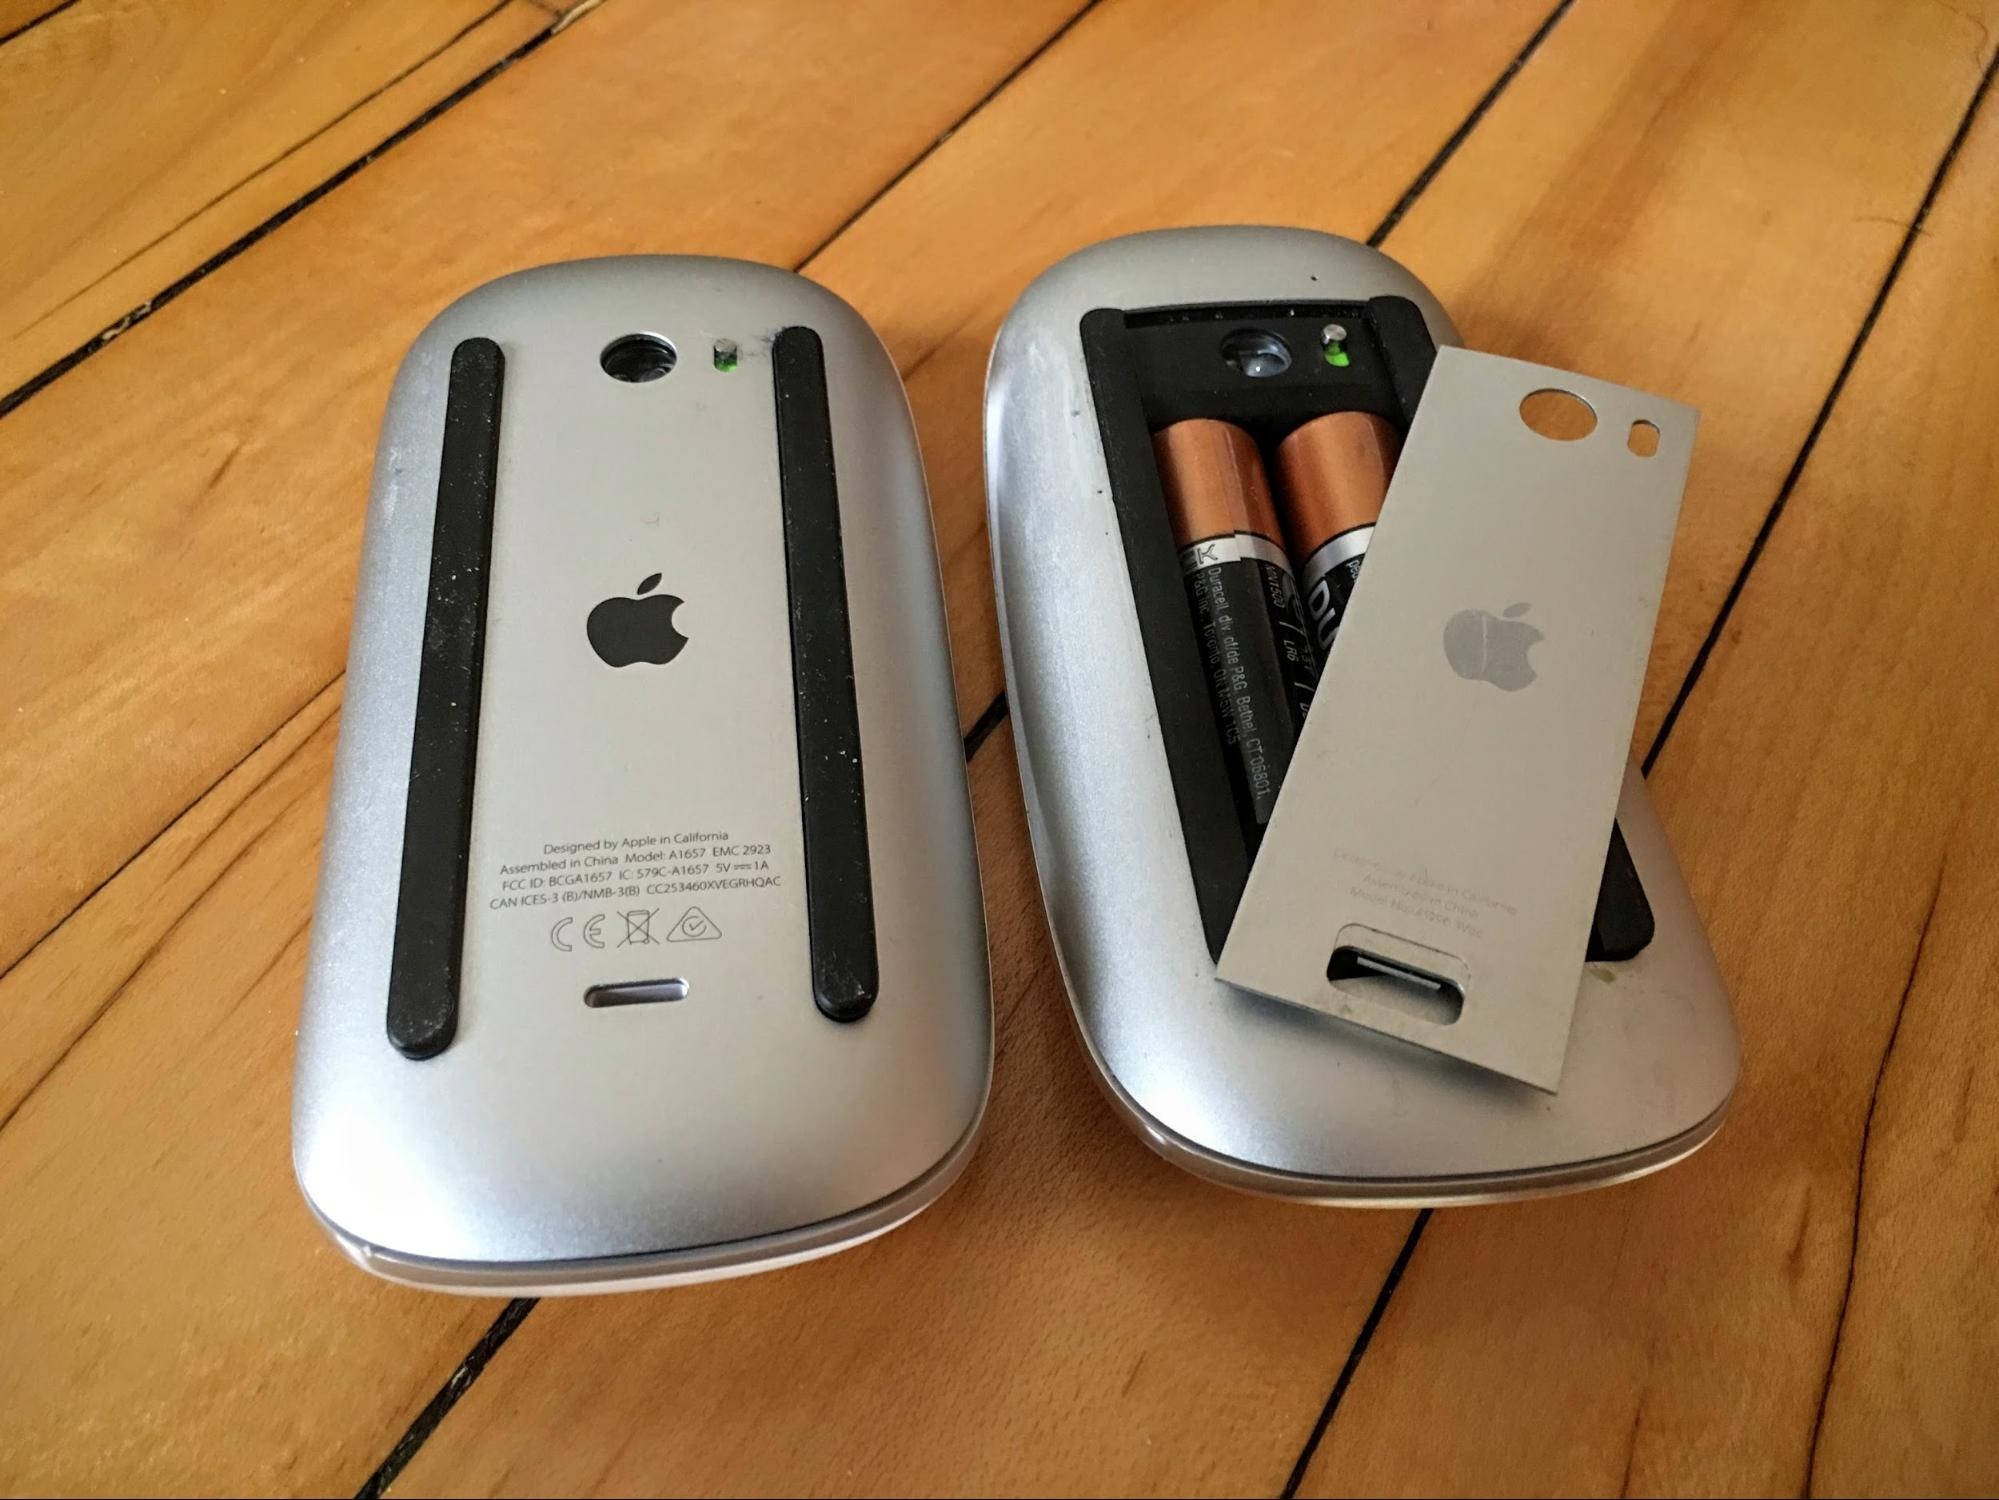 How To Use the Apple Magic Mouse on Windows 7